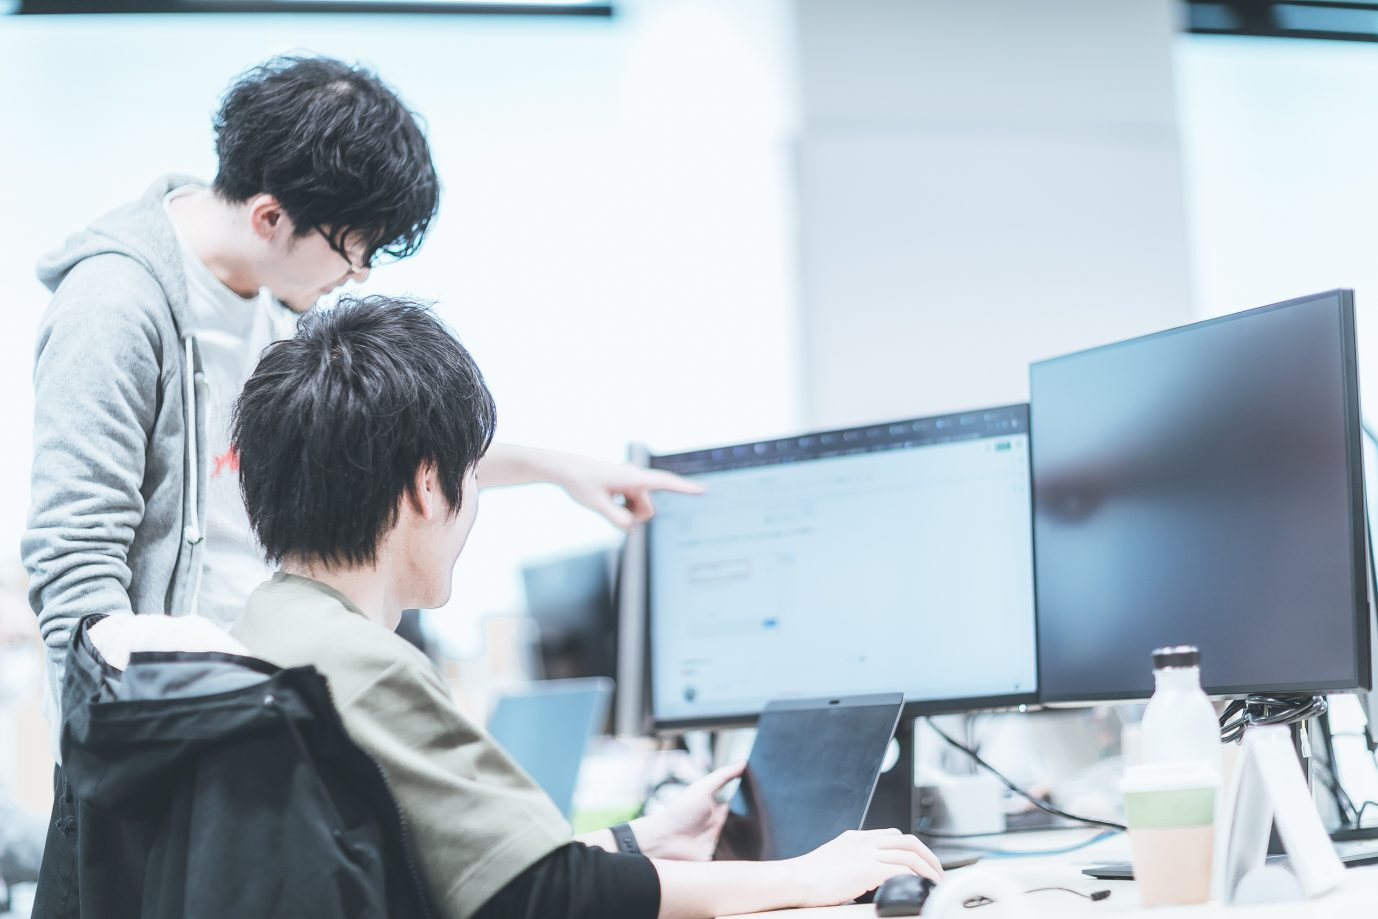 Two DeNA employees collaborate over a computer screen.